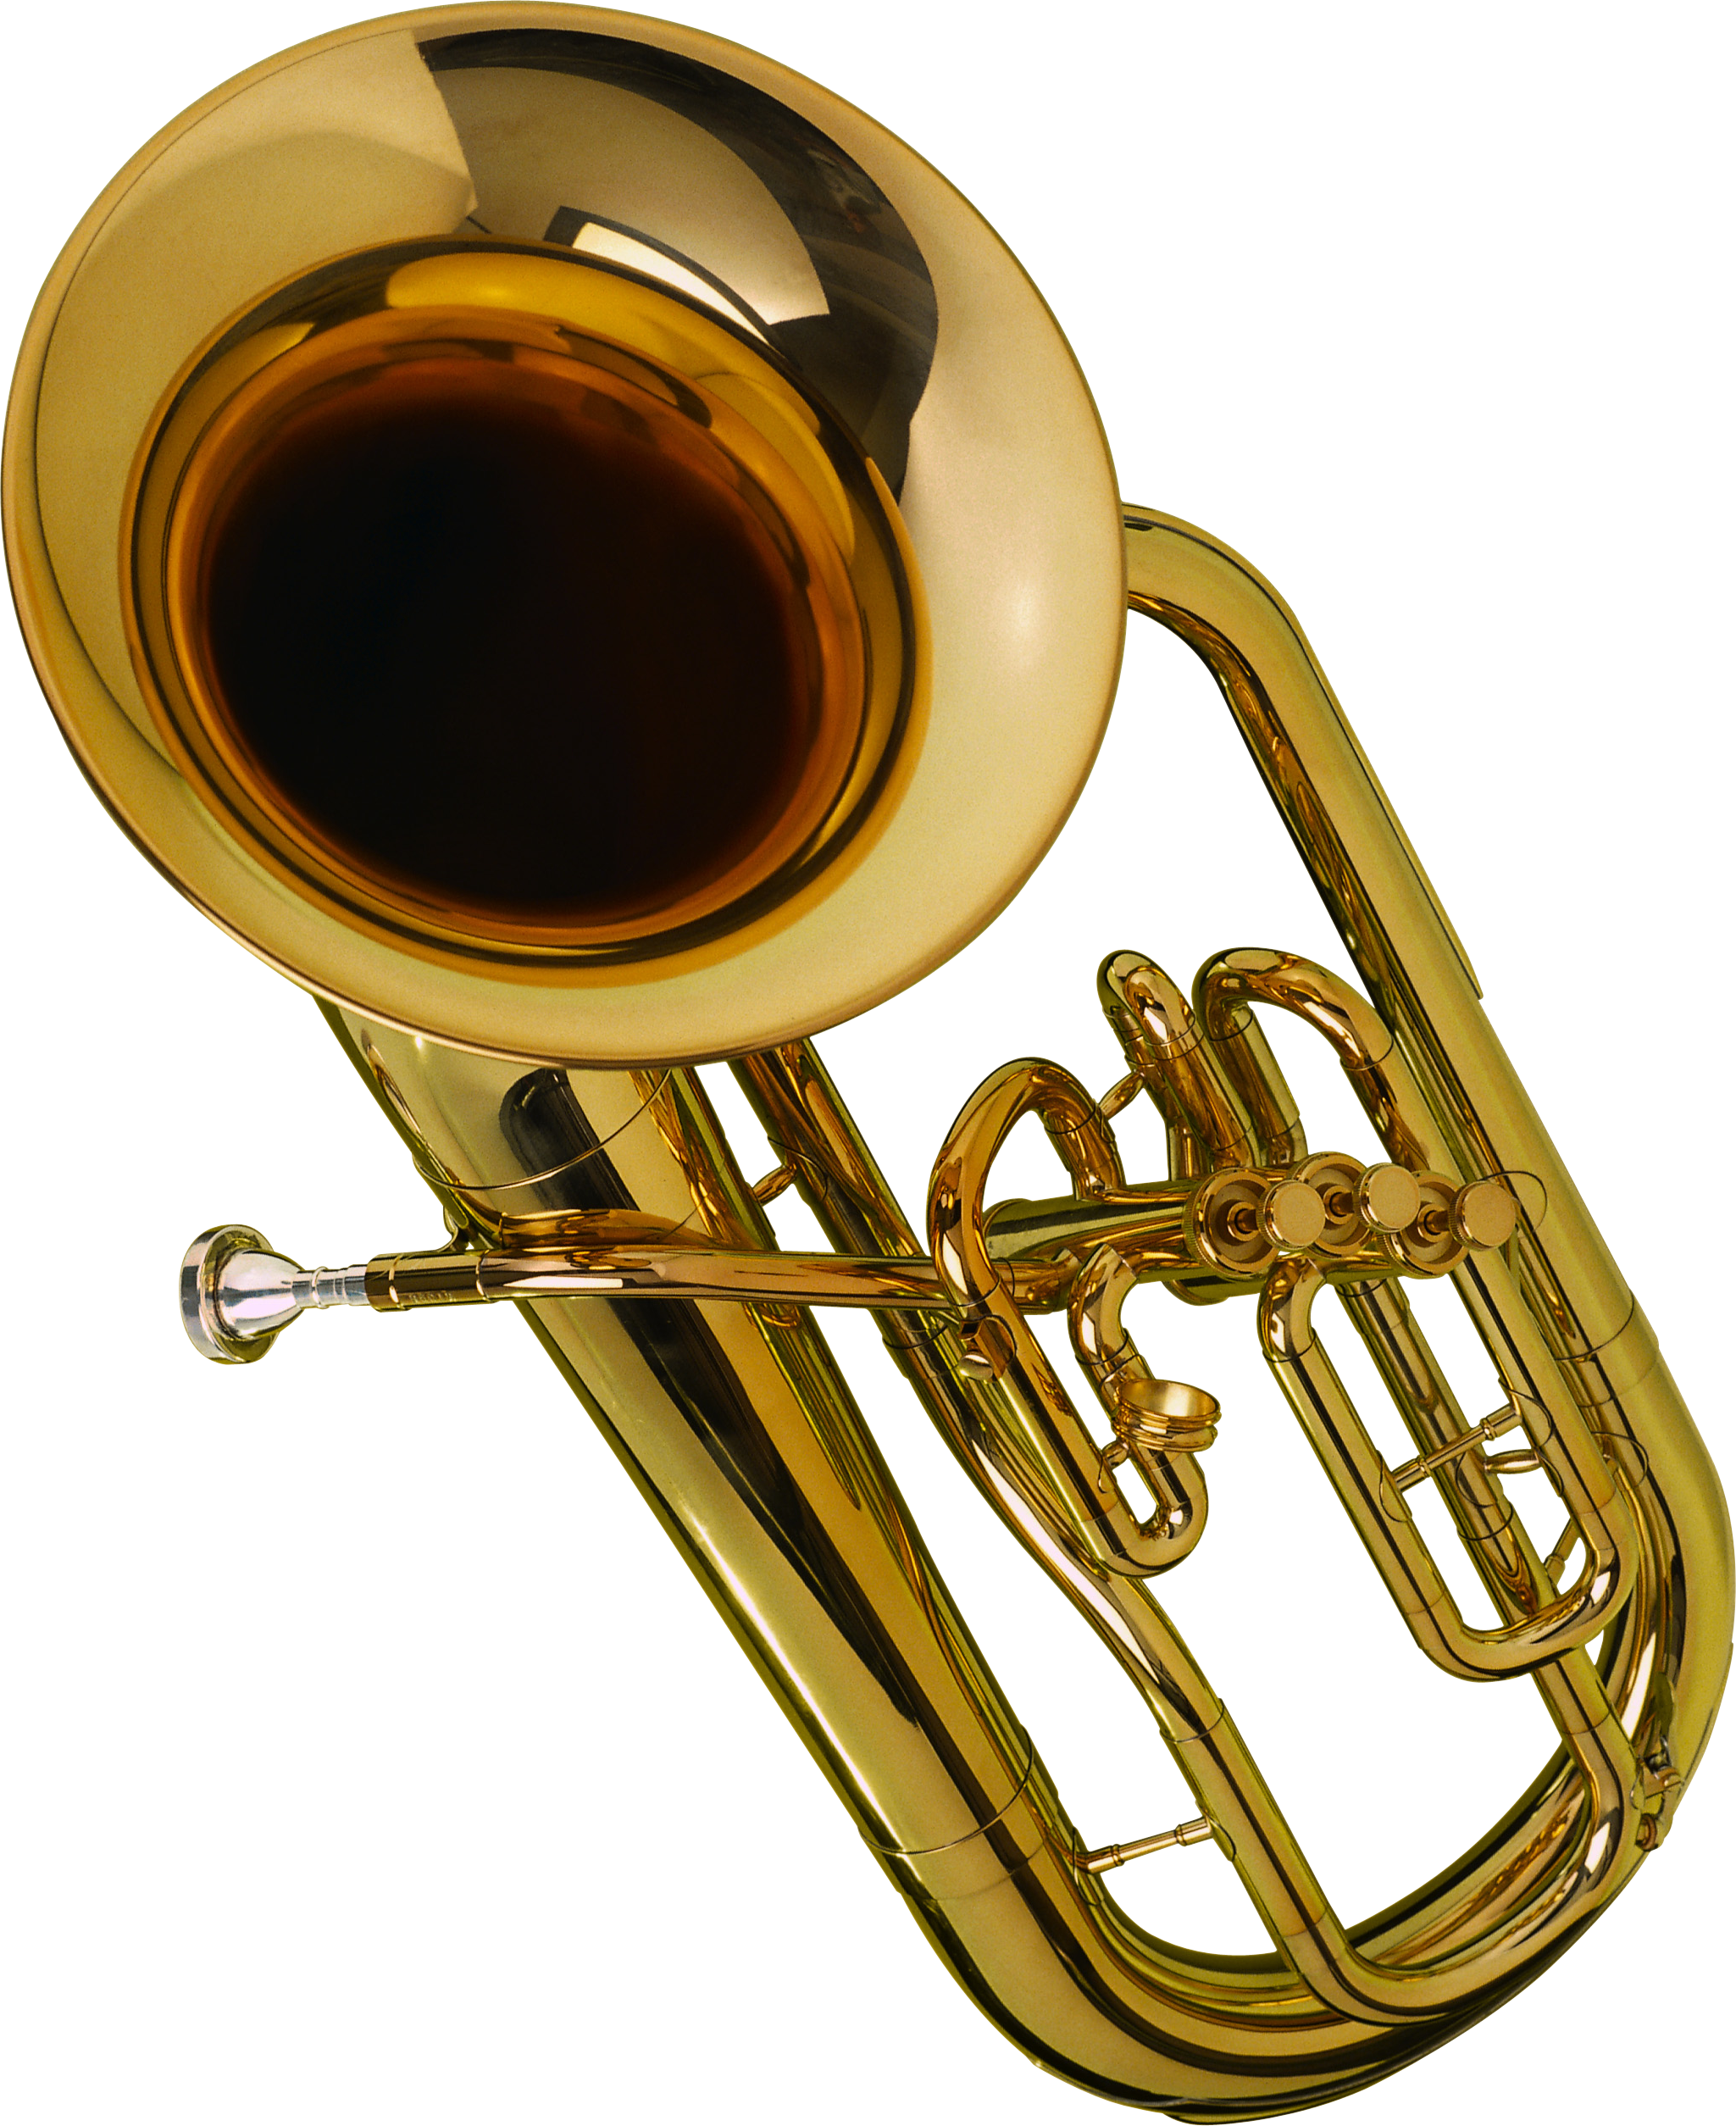 trumpet and saxophone png images available for download crazypngm crazy png images #29558